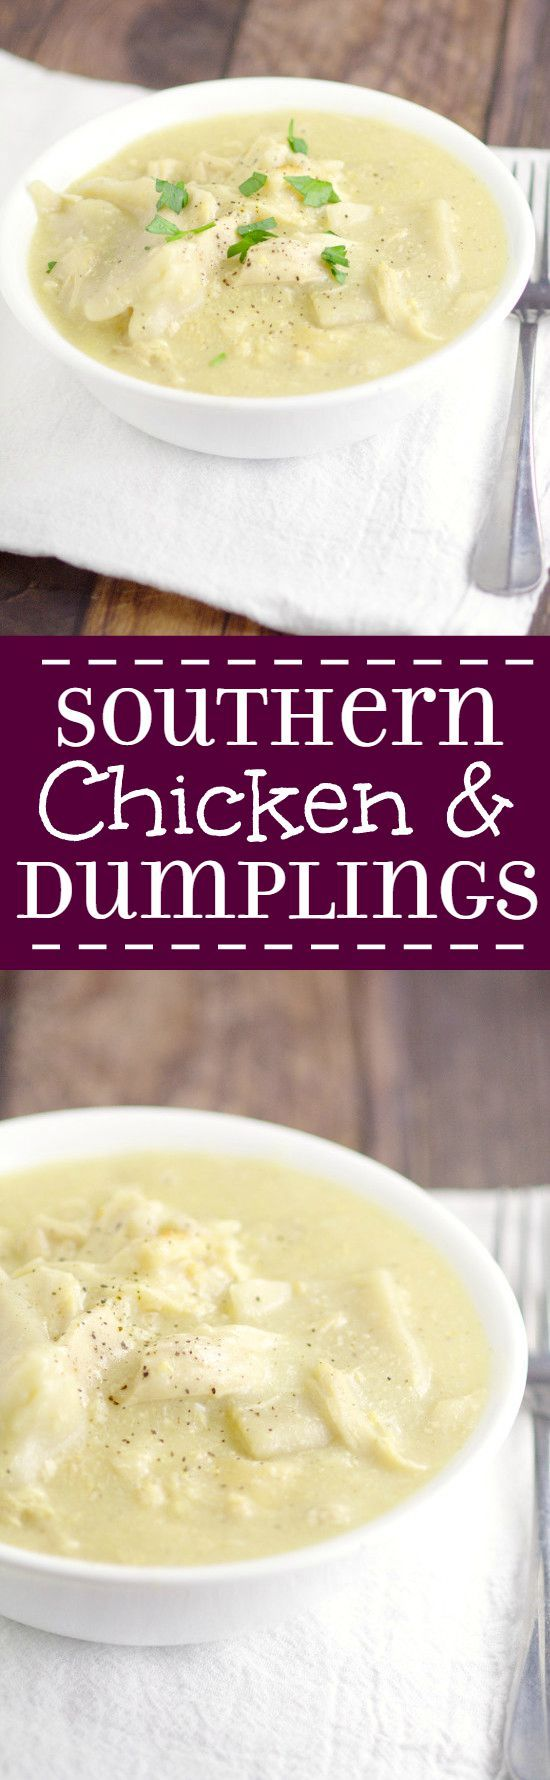 Classic Southern Chicken and Dumplings recipe makes a tasty and filling comfort…